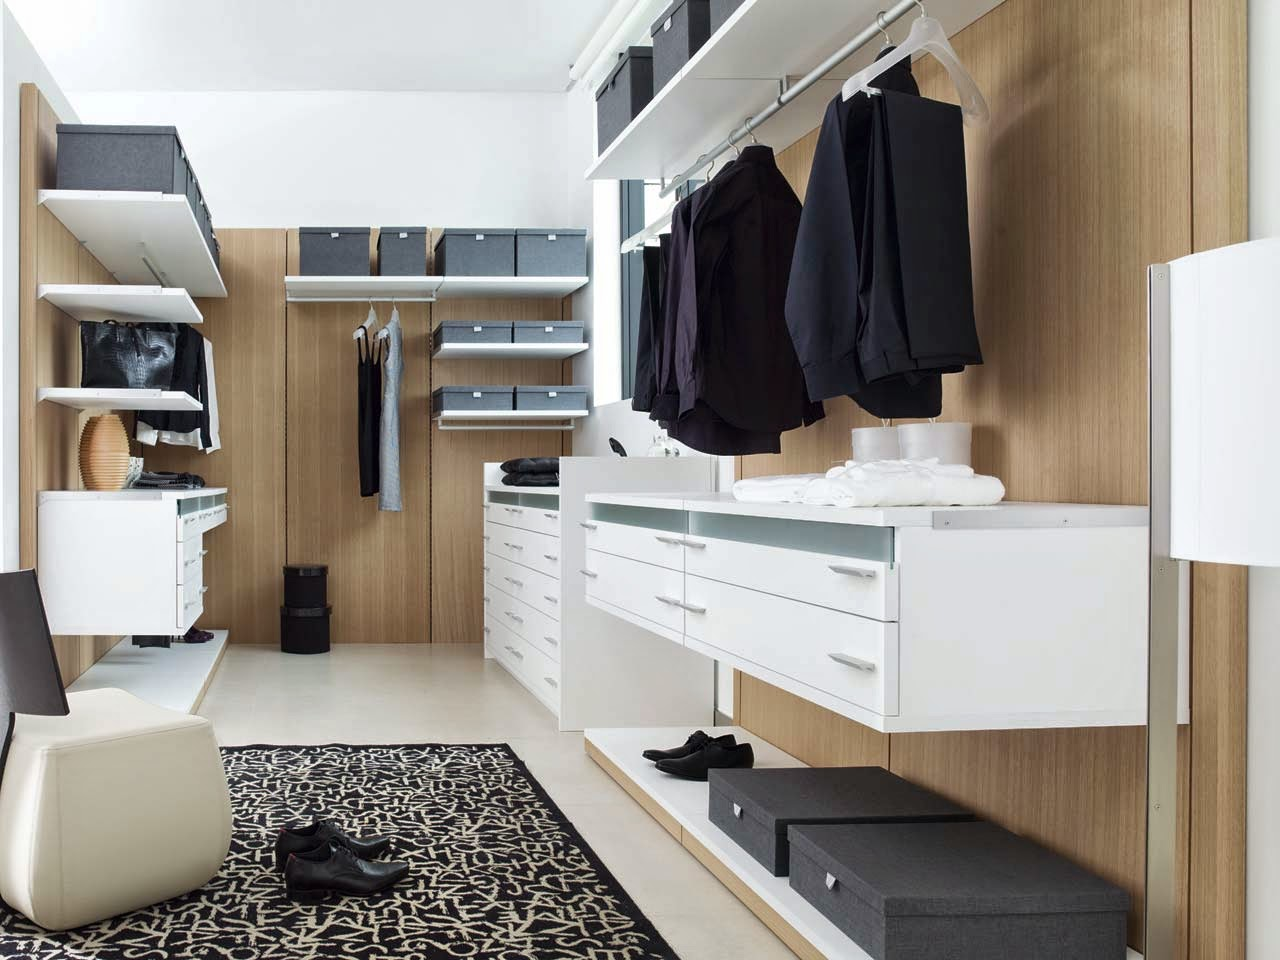 Wardrobes from Porcelanosa